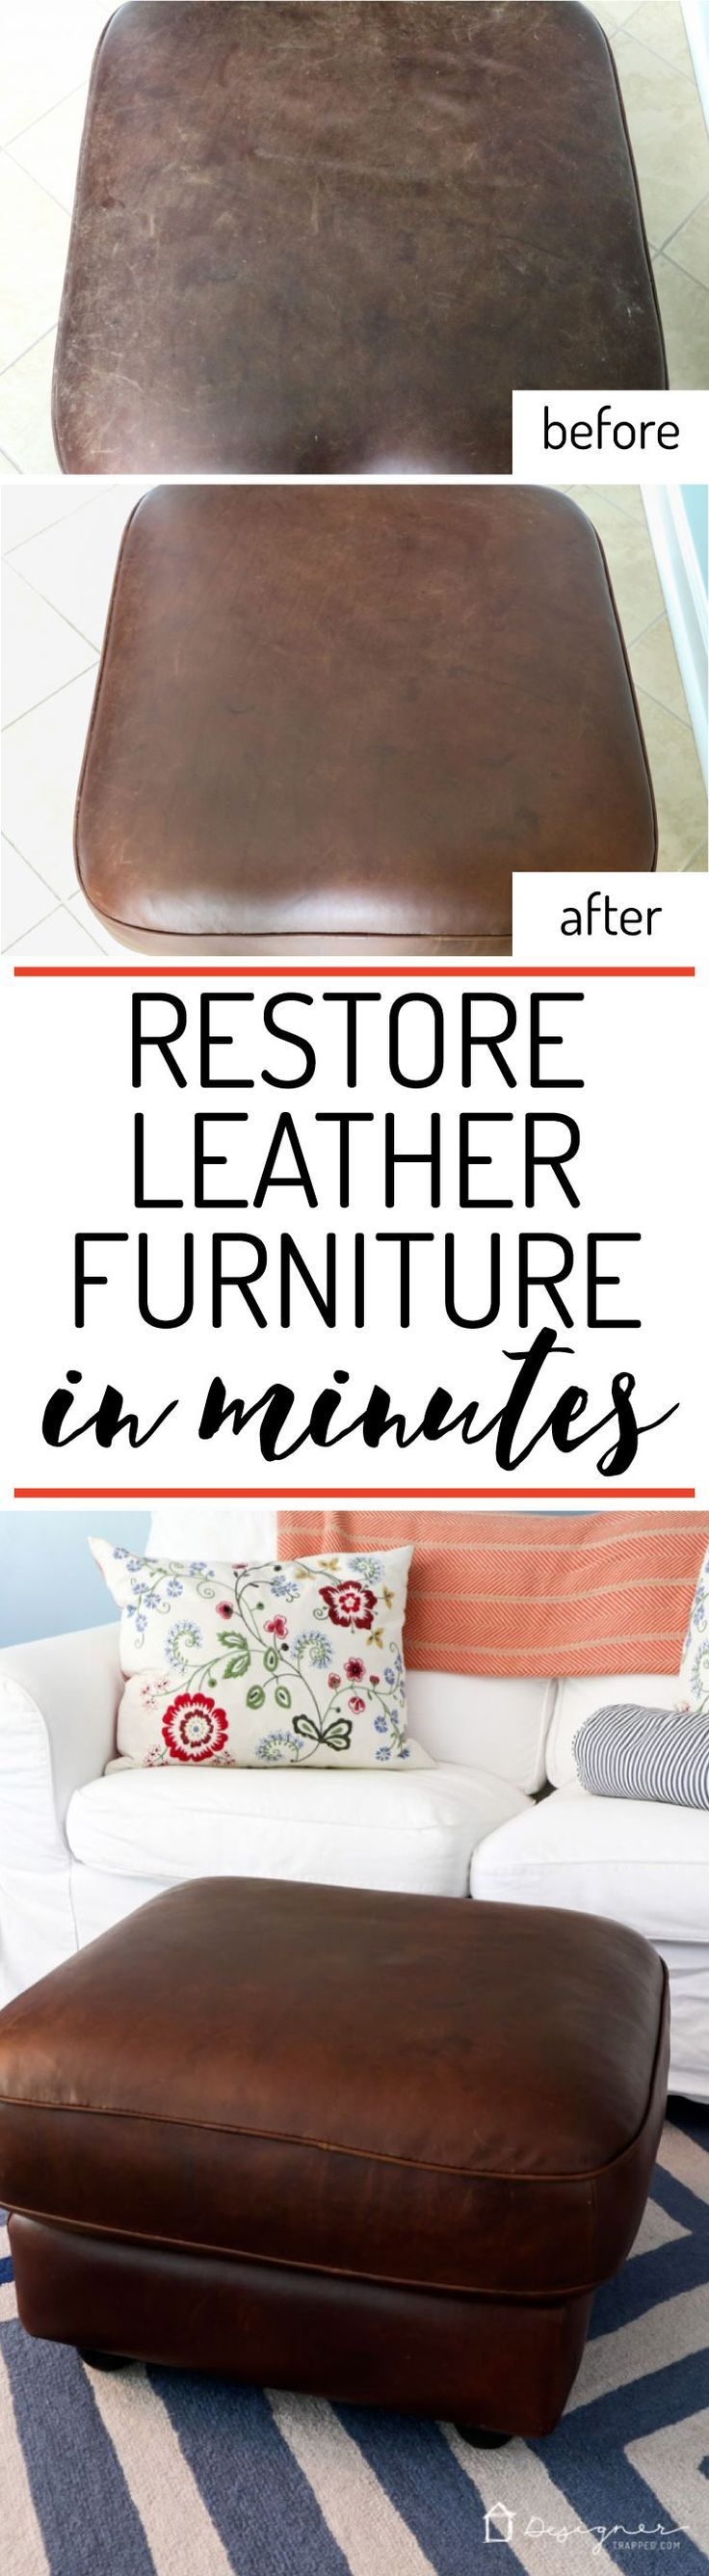 Learn How to Restore Leather Furniture | Leather furniture ...